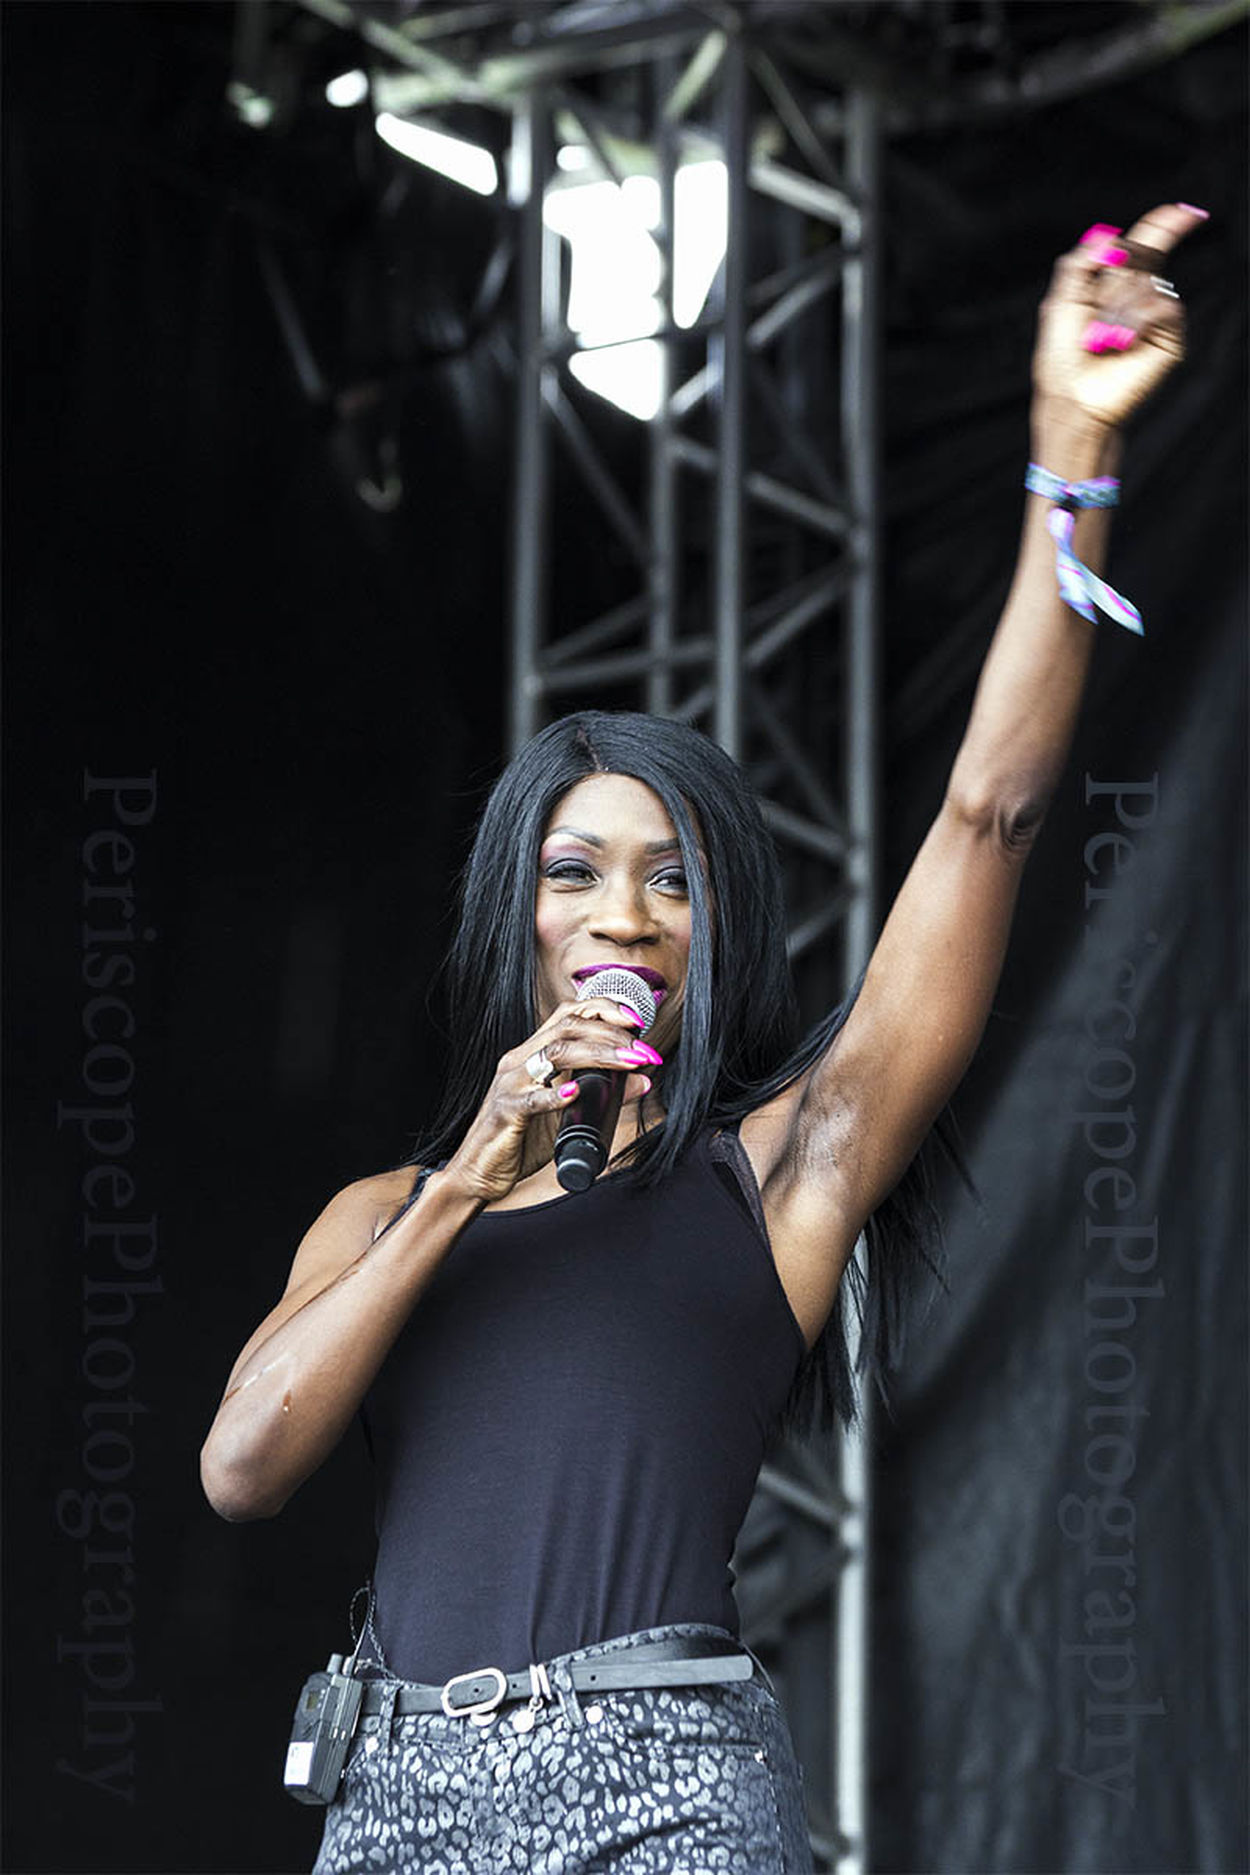 Heather Small of M People fame performs at a free concert in south shields, UK. Artist Black Concert Female Gig Heather Small M People Performer  Singer